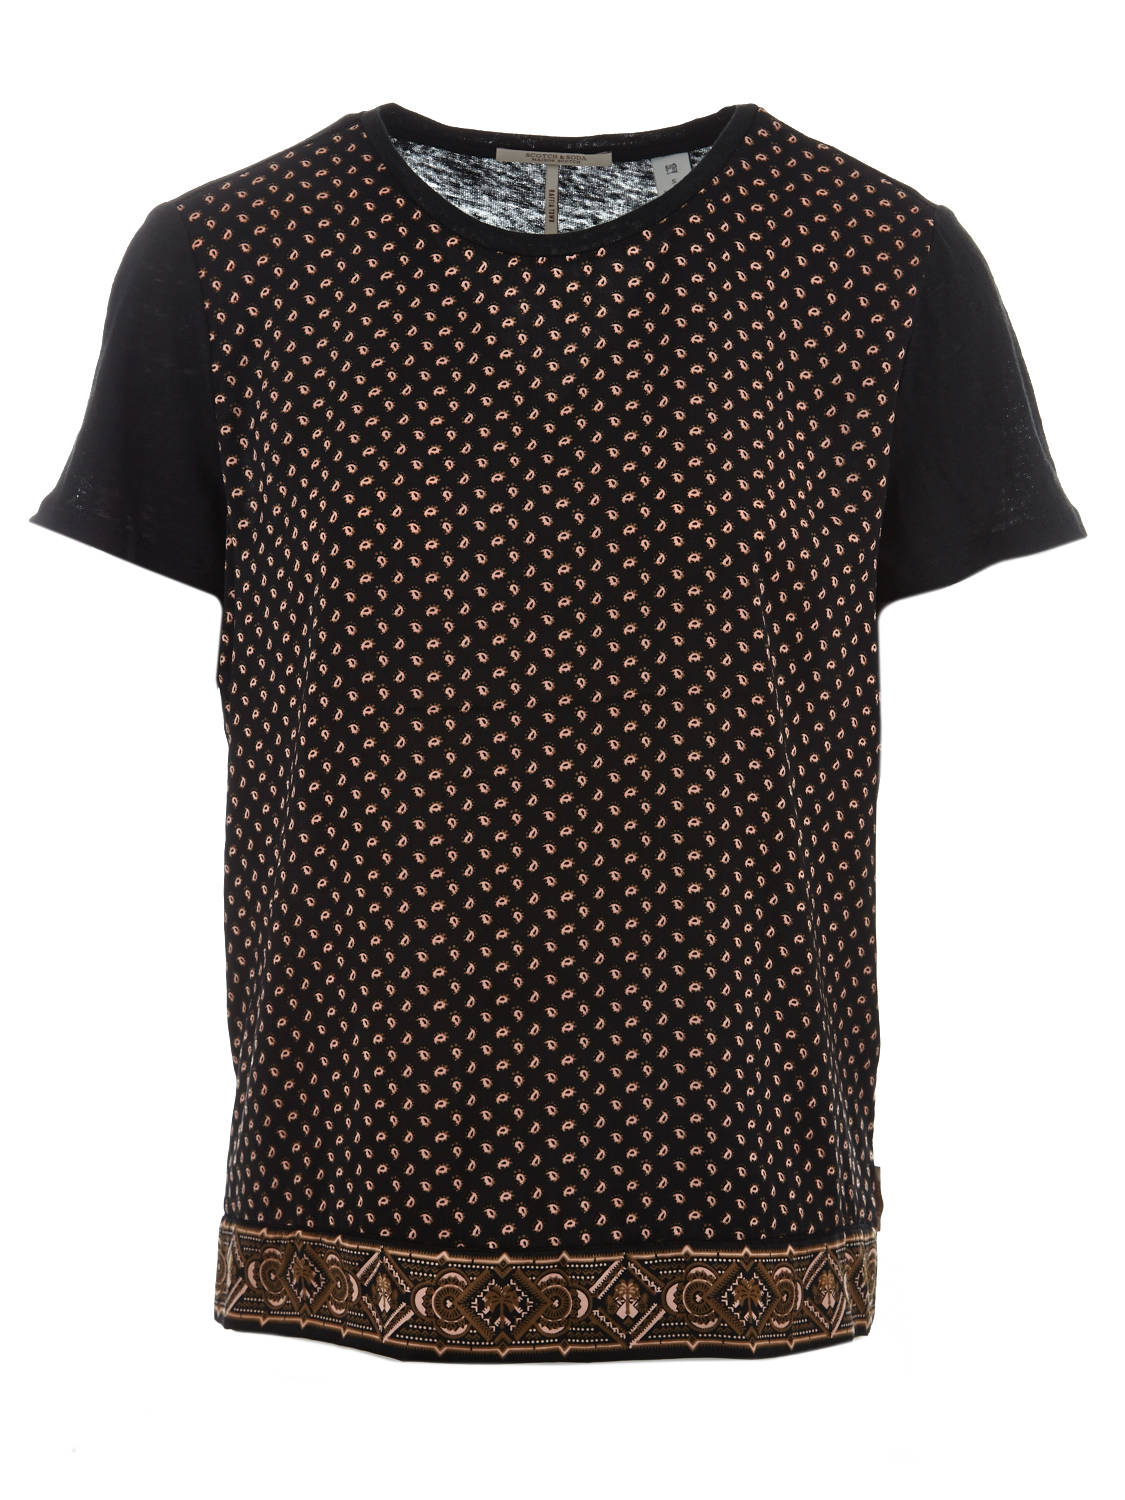 Zwart dames shirt met print Maison Scotch - 150160